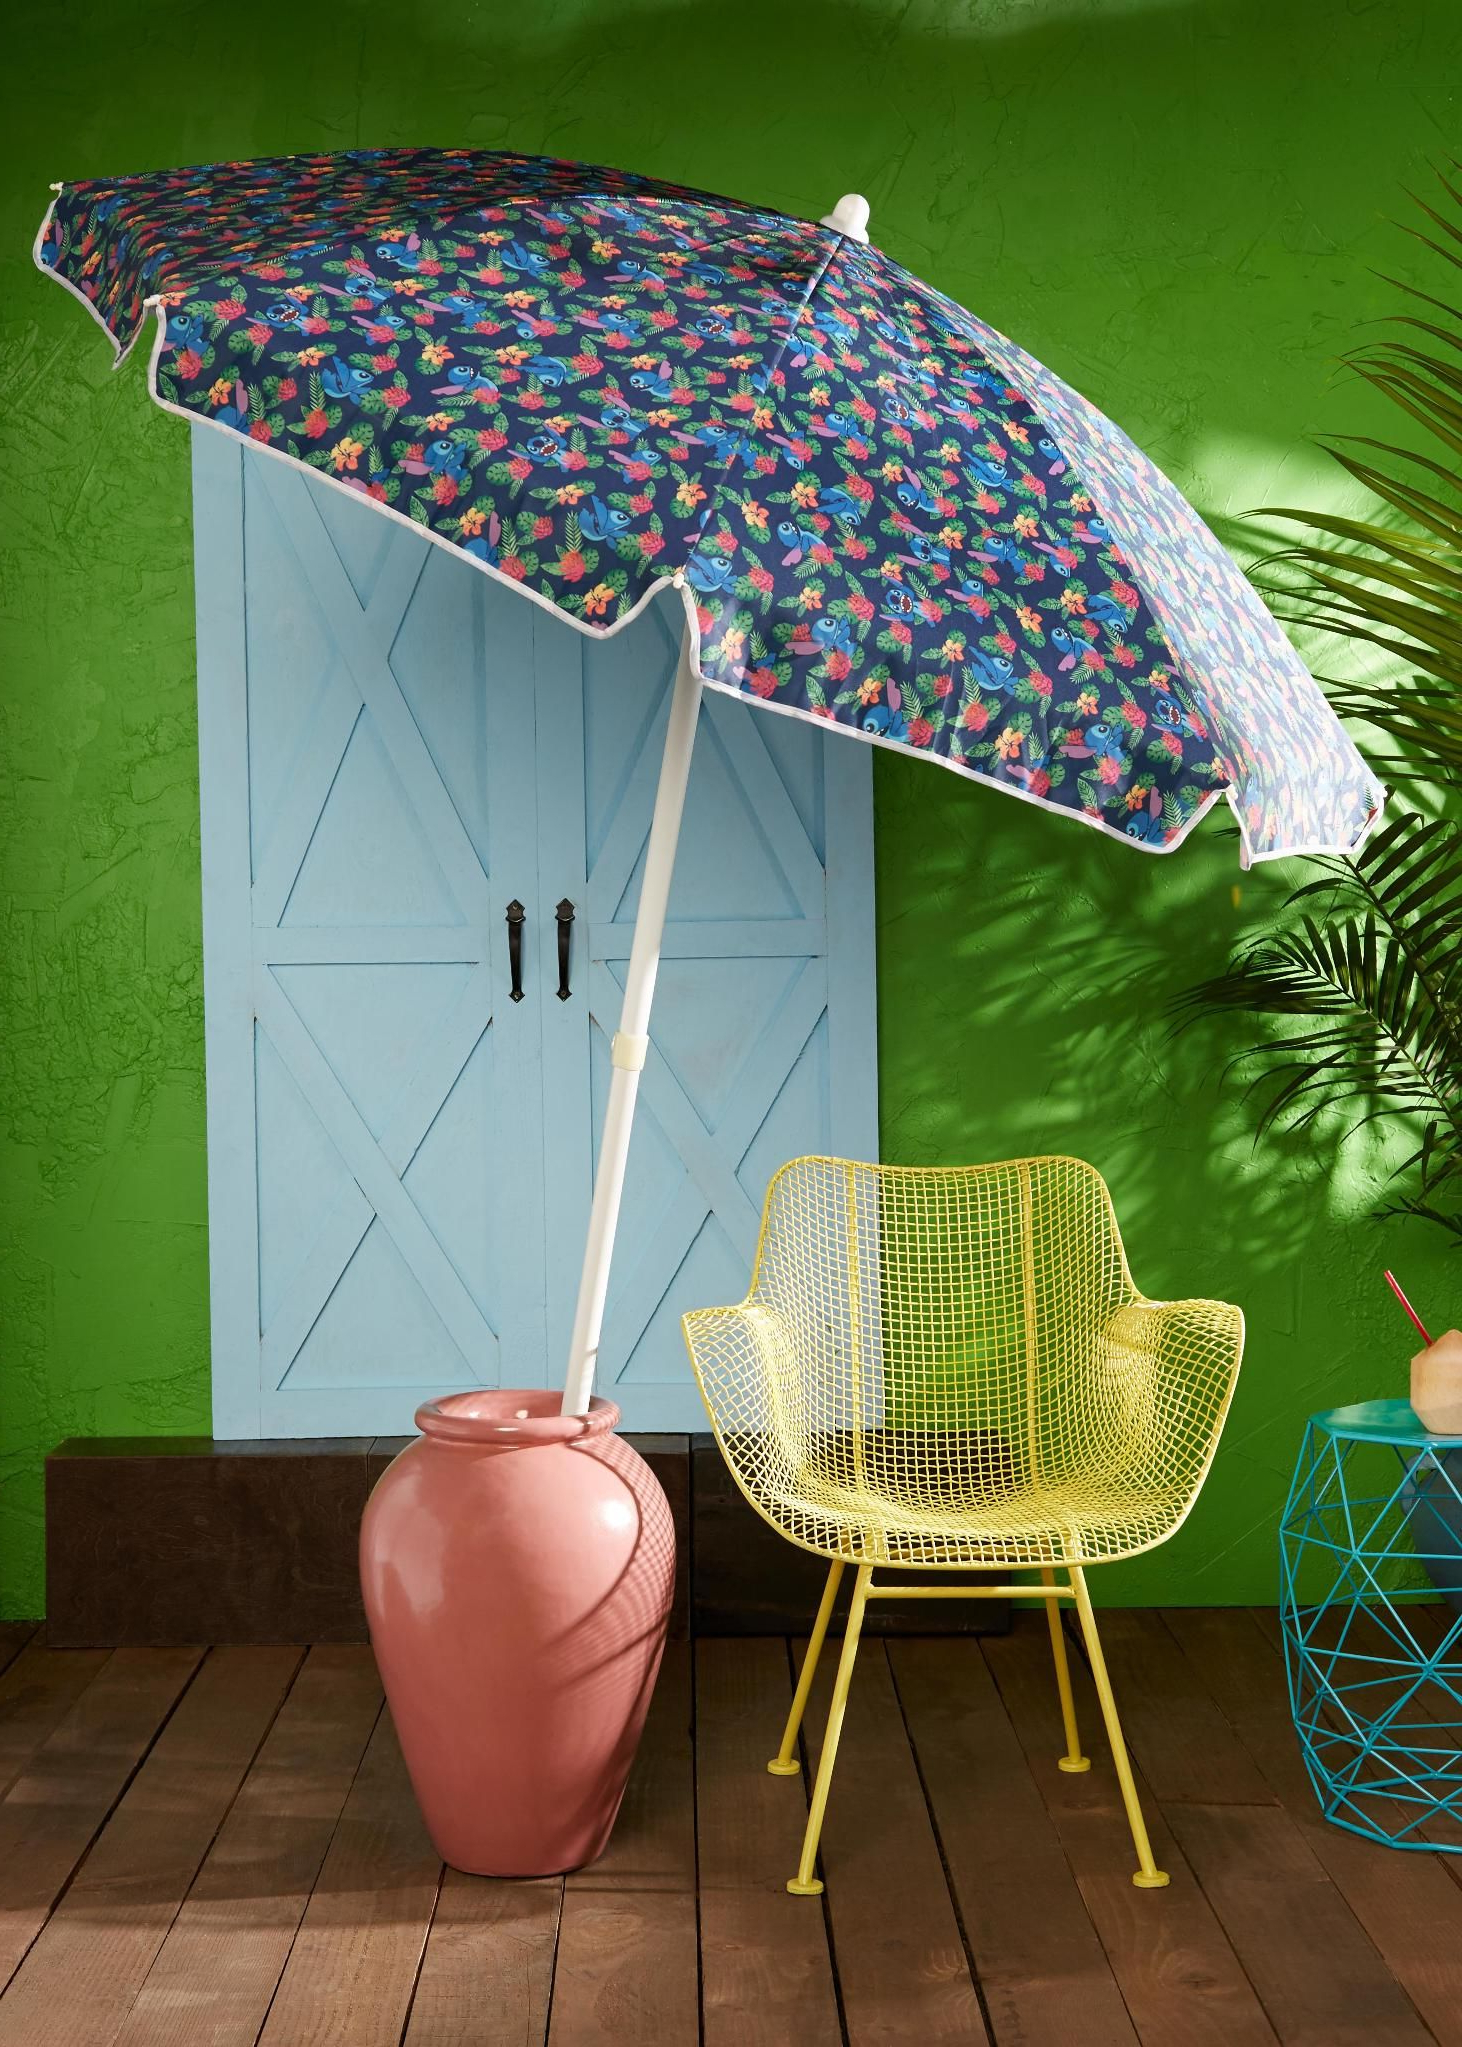 Most Recent Disney Lilo & Stitch Beach Umbrella – Boxlunch Exclusive In 2019 Intended For Smithmill Beach Umbrellas (Gallery 6 of 20)